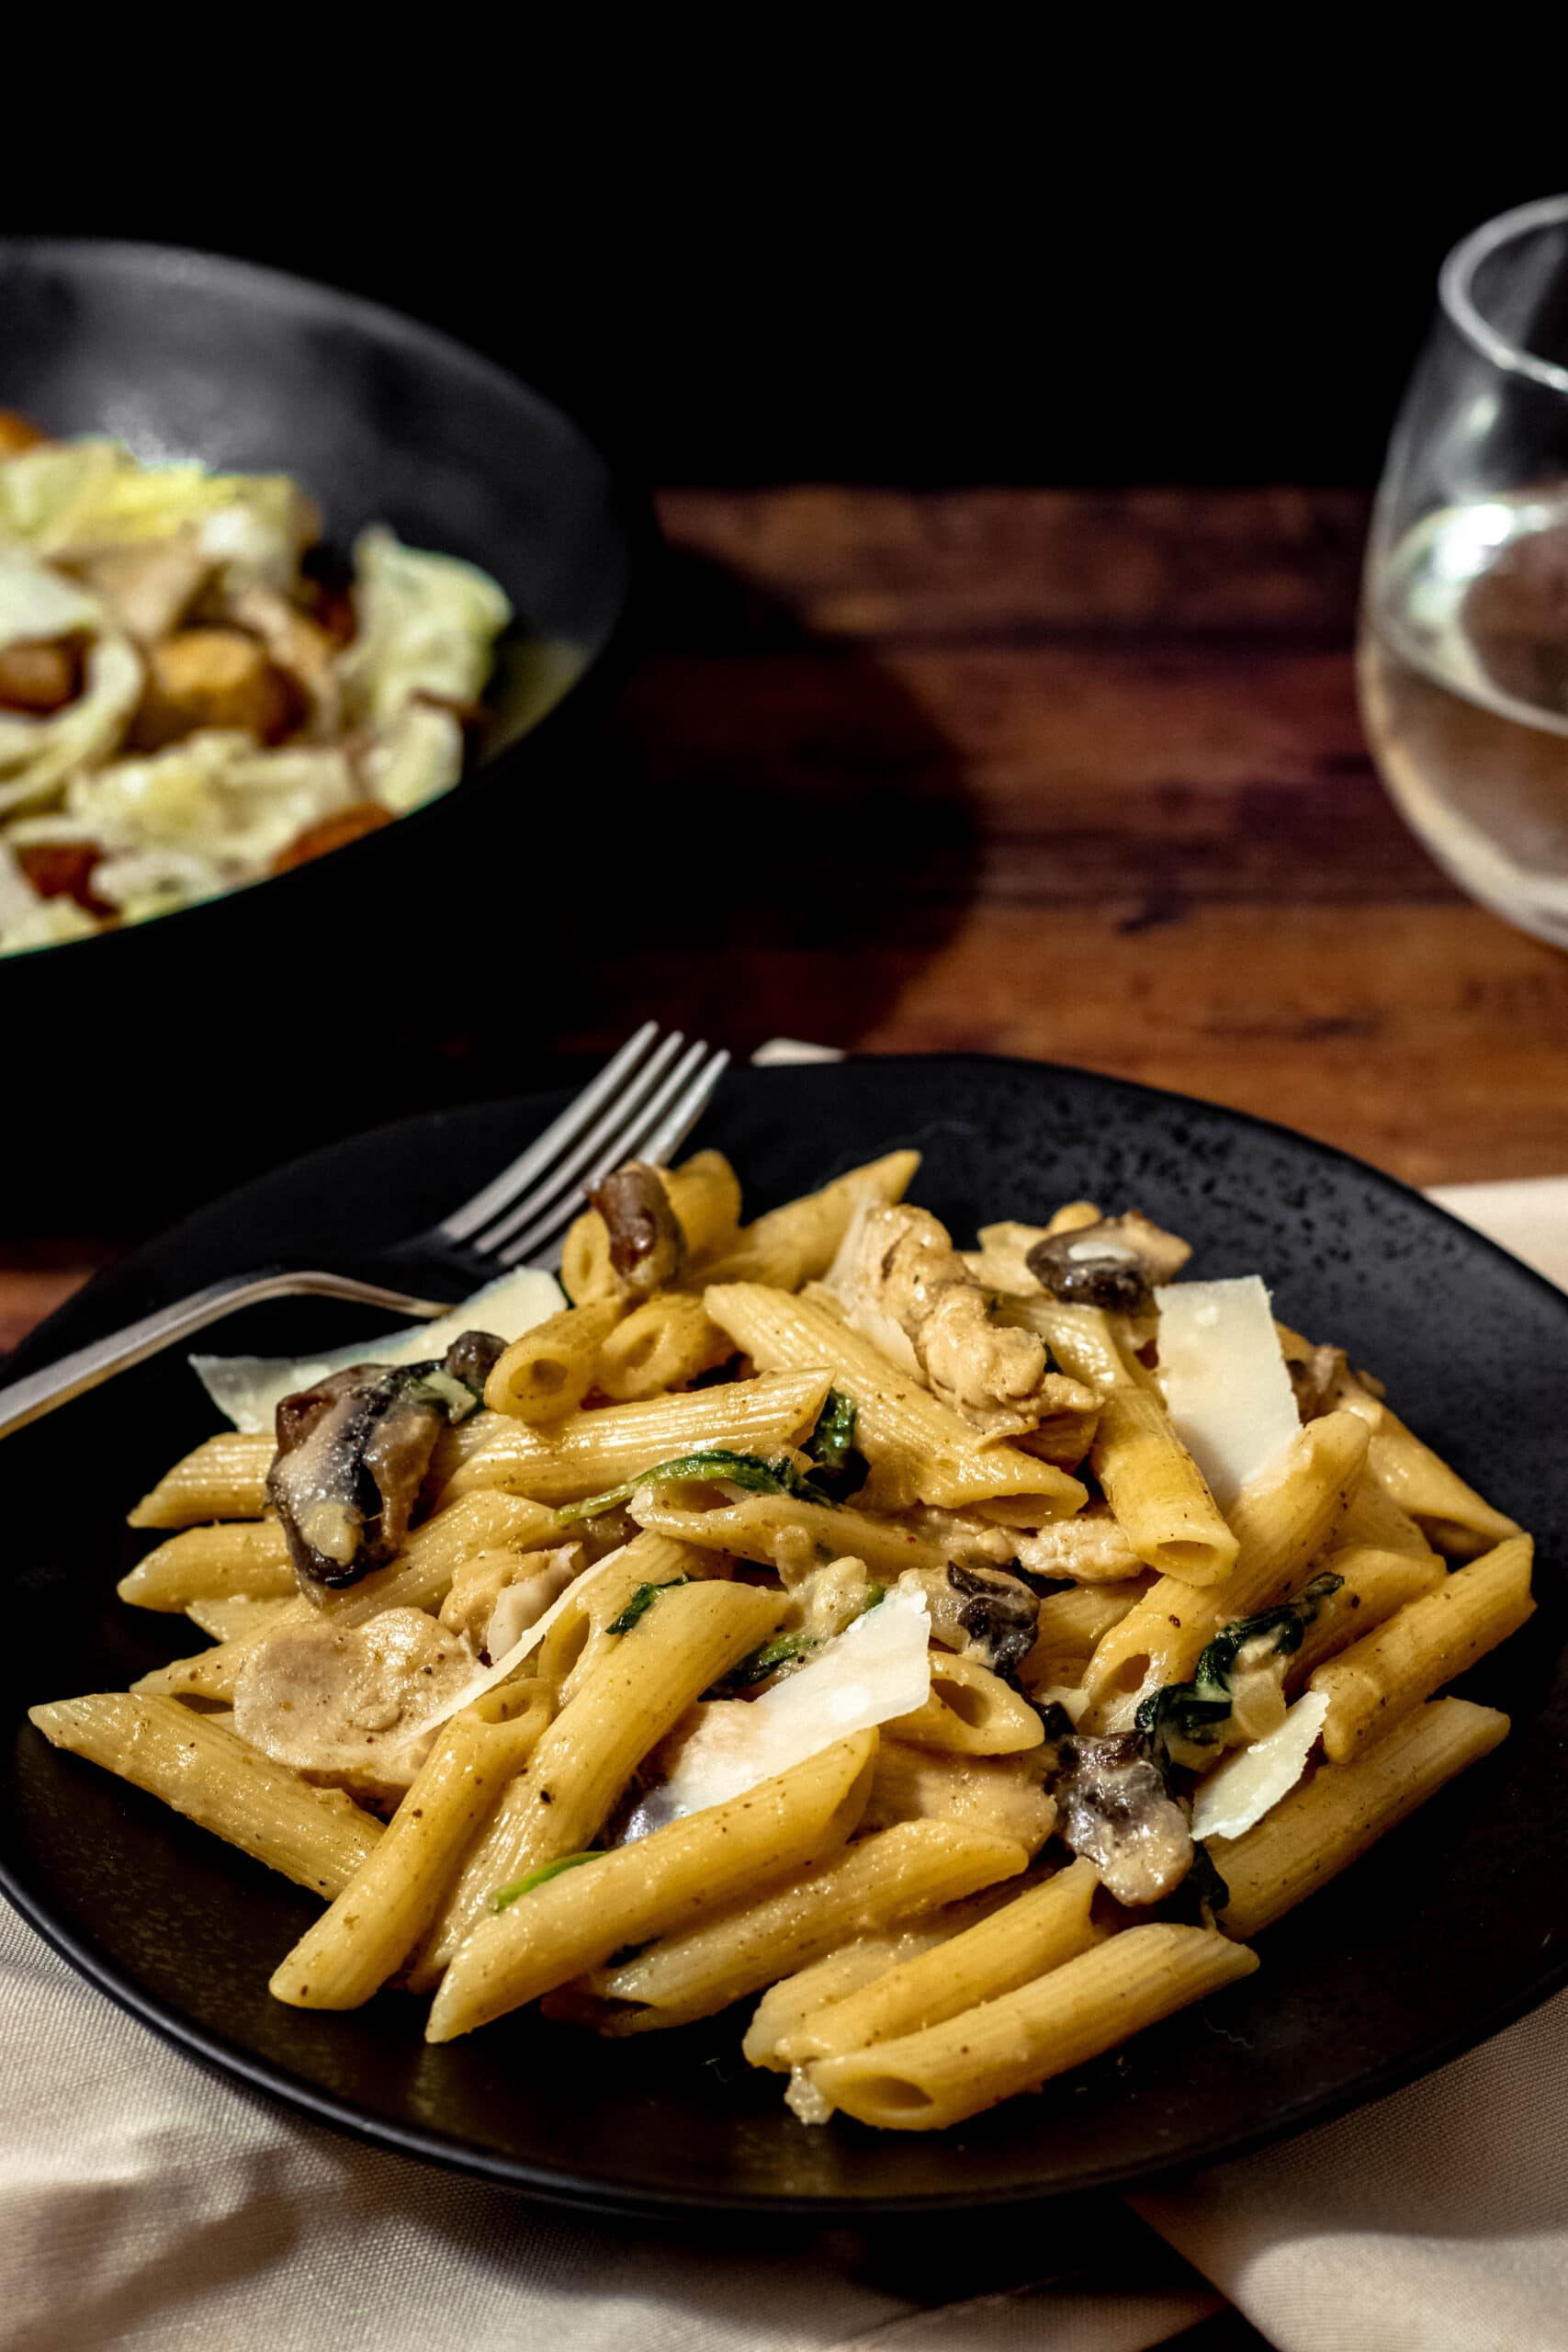 A bowl of maple curry penne on a wooden table with a glass of wine and side salad in the background